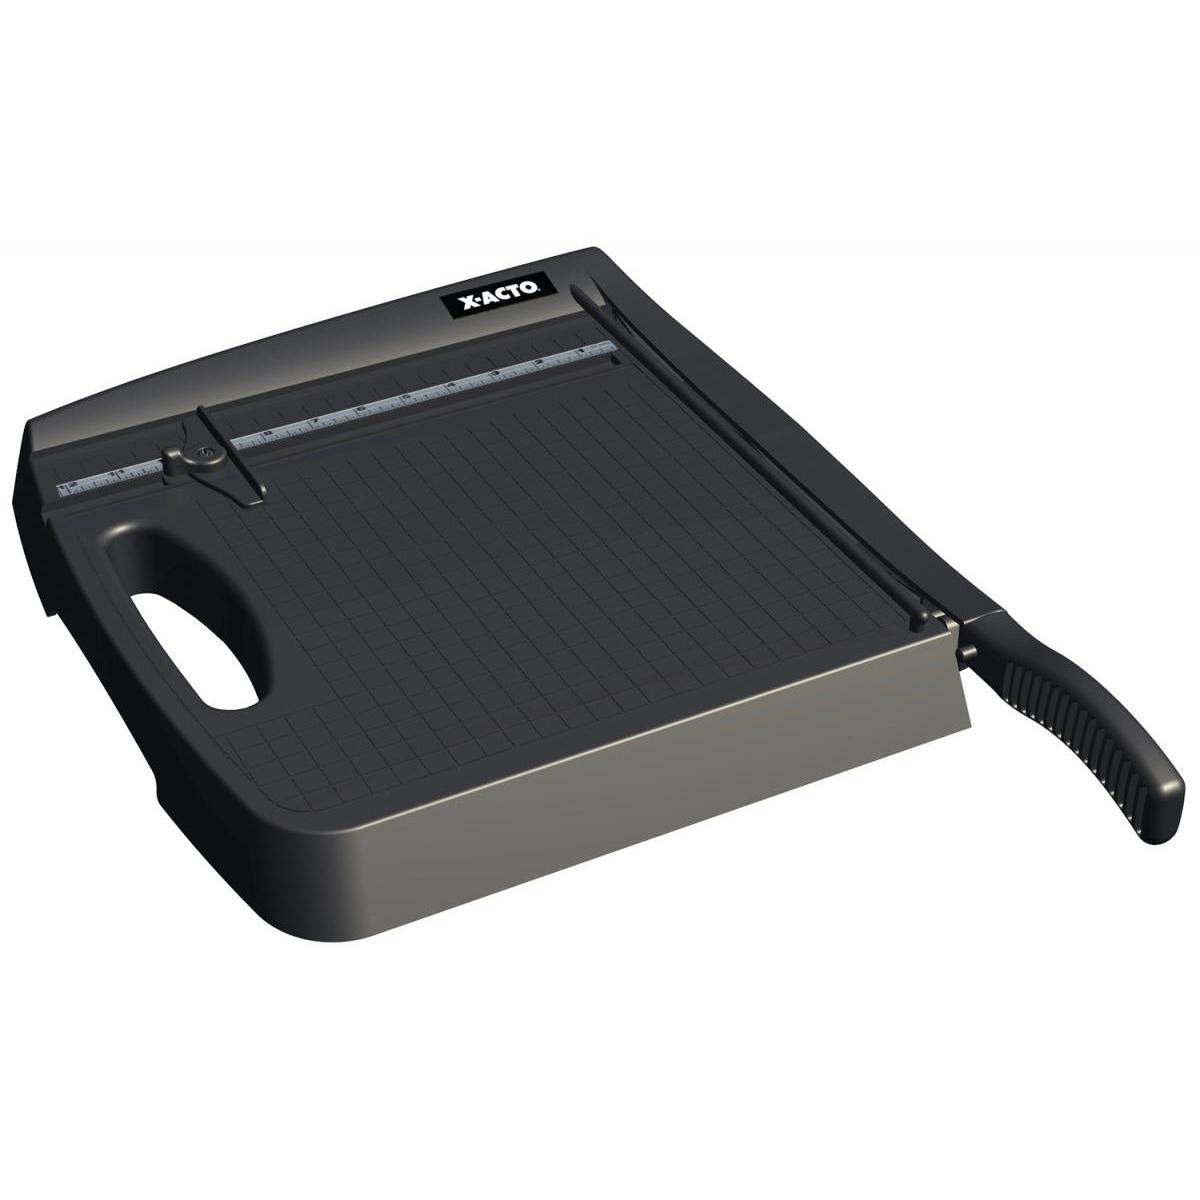 X-Acto Heavy Duty Guillotine Paper Trimmer